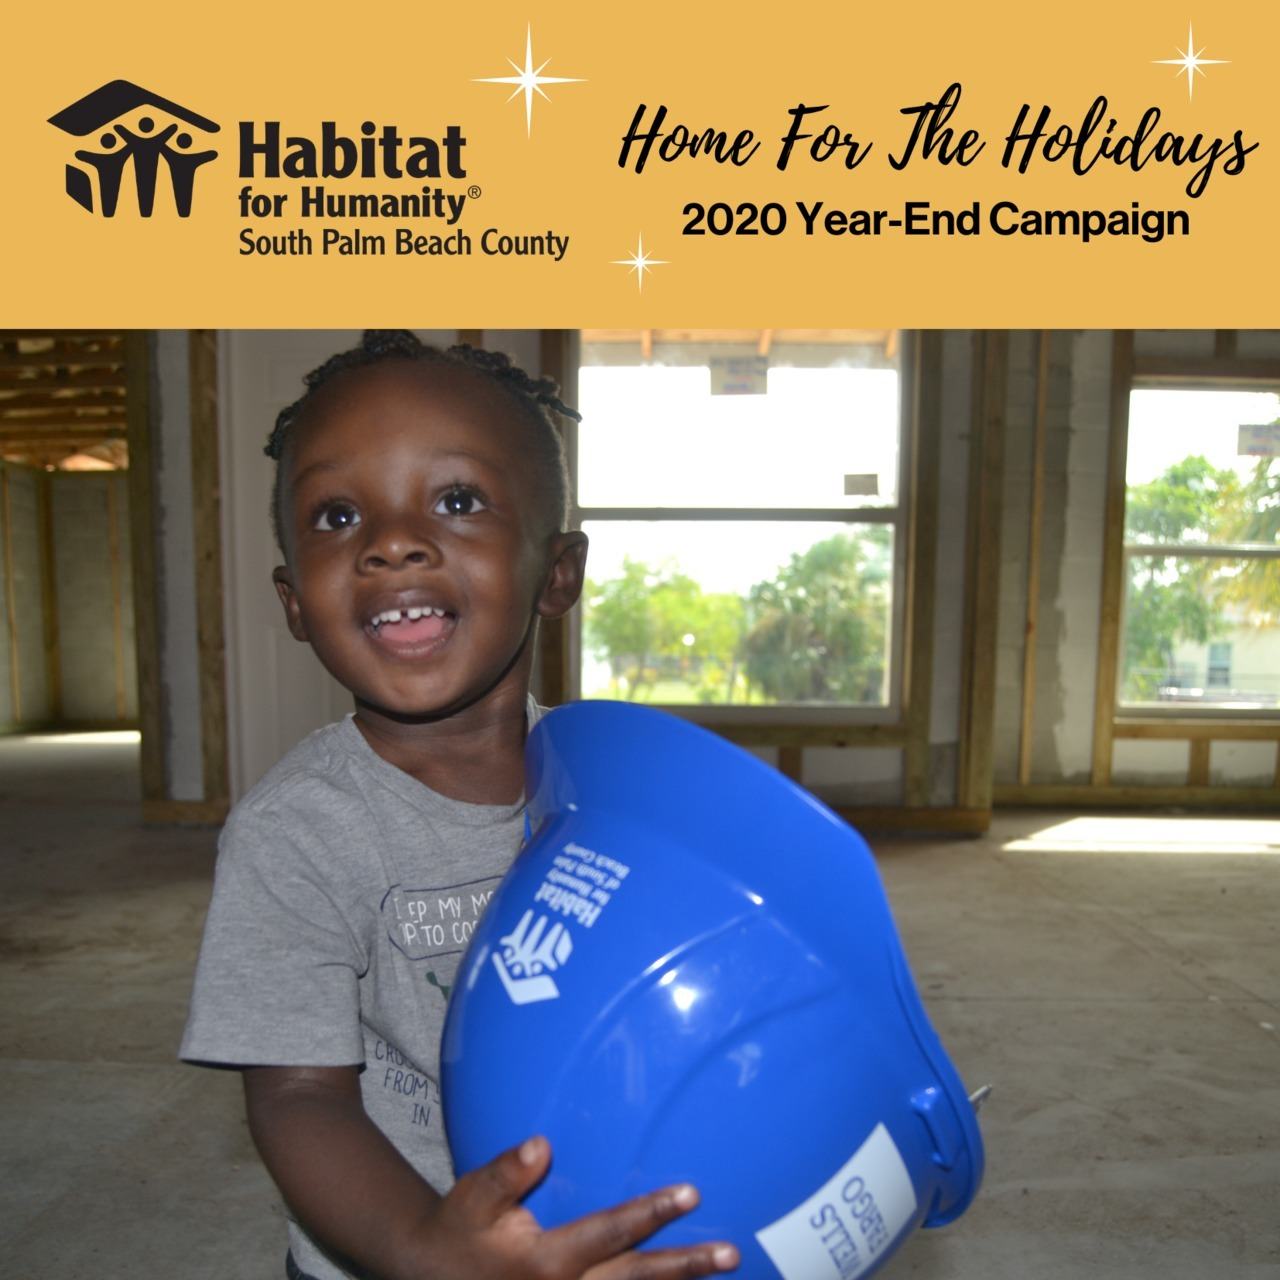 """""""Home For The Holidays"""" 2020 Year-End Campaign"""